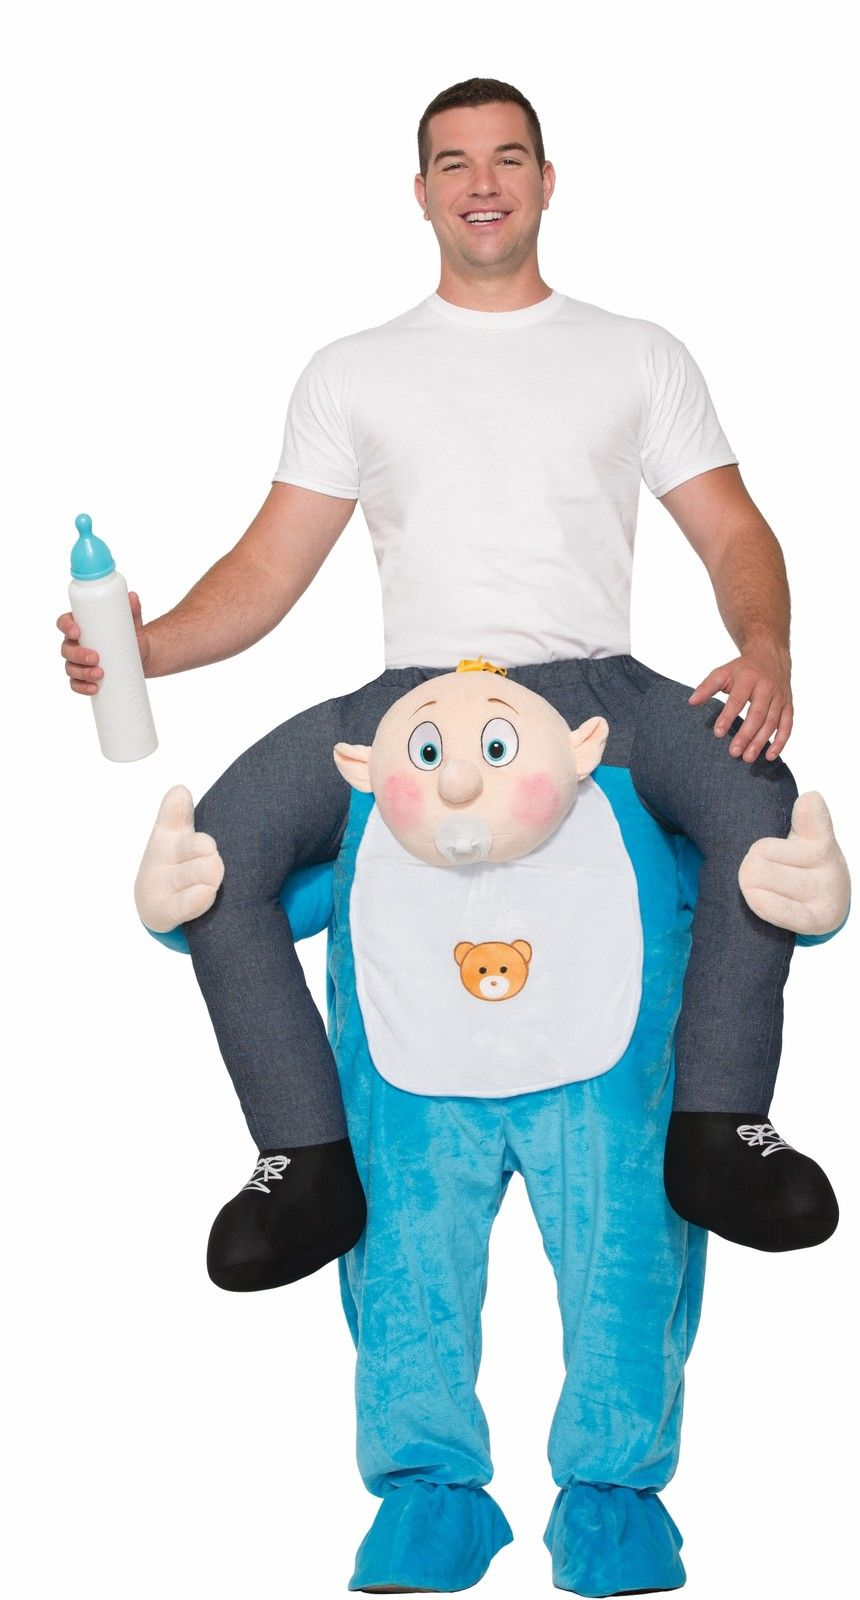 Carry Me Buddy Ride On A Baby Costume Adult Size Piggy Back Piggyback Ride  sc 1 st  eBay & Carry Me Buddy Ride On A Baby Costume Adult Size Piggy Back ...